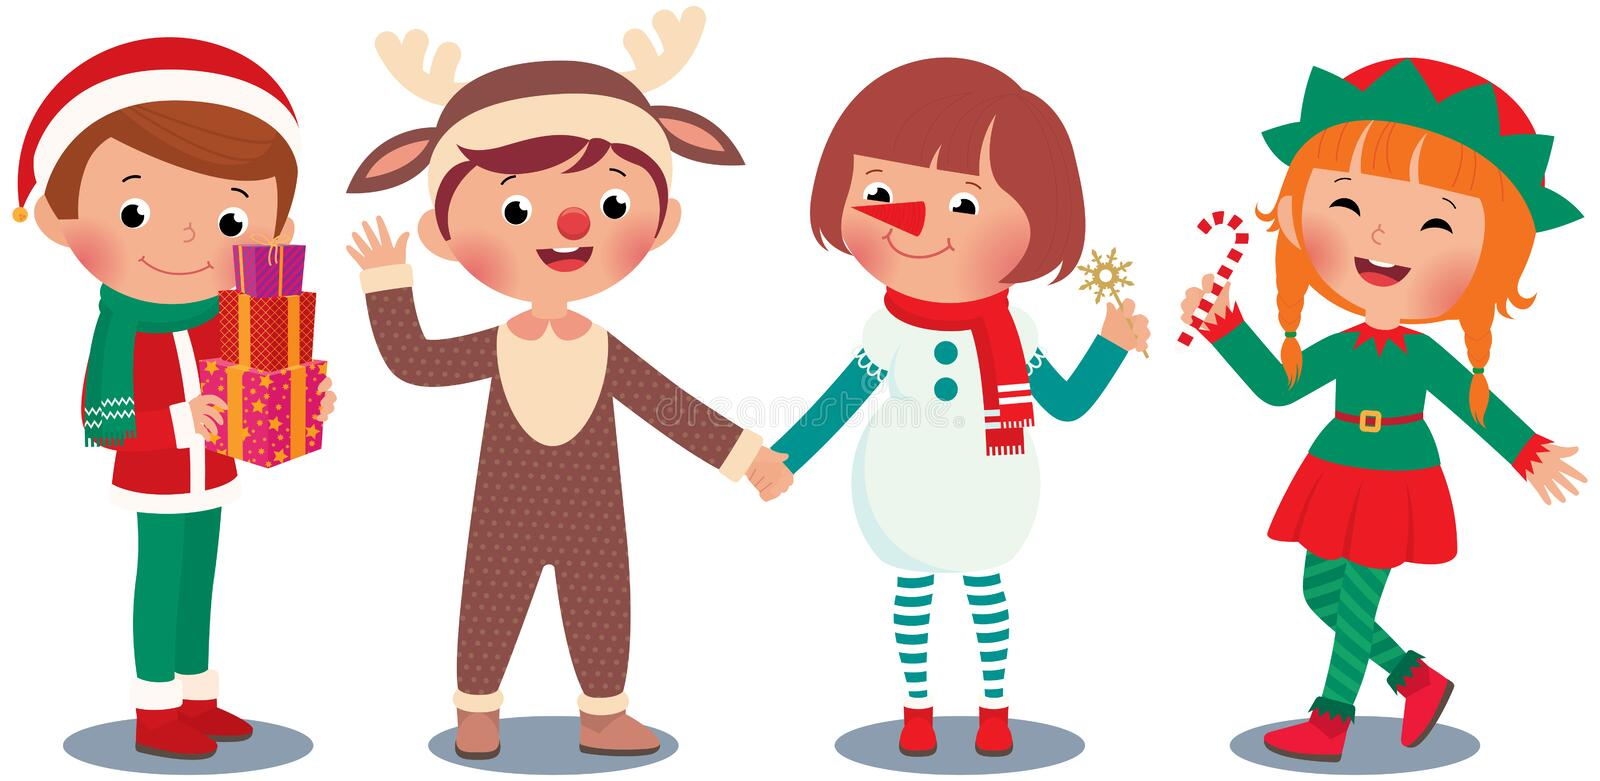 Children celebrating Christmas in Christmas Costumes royalty free illustration